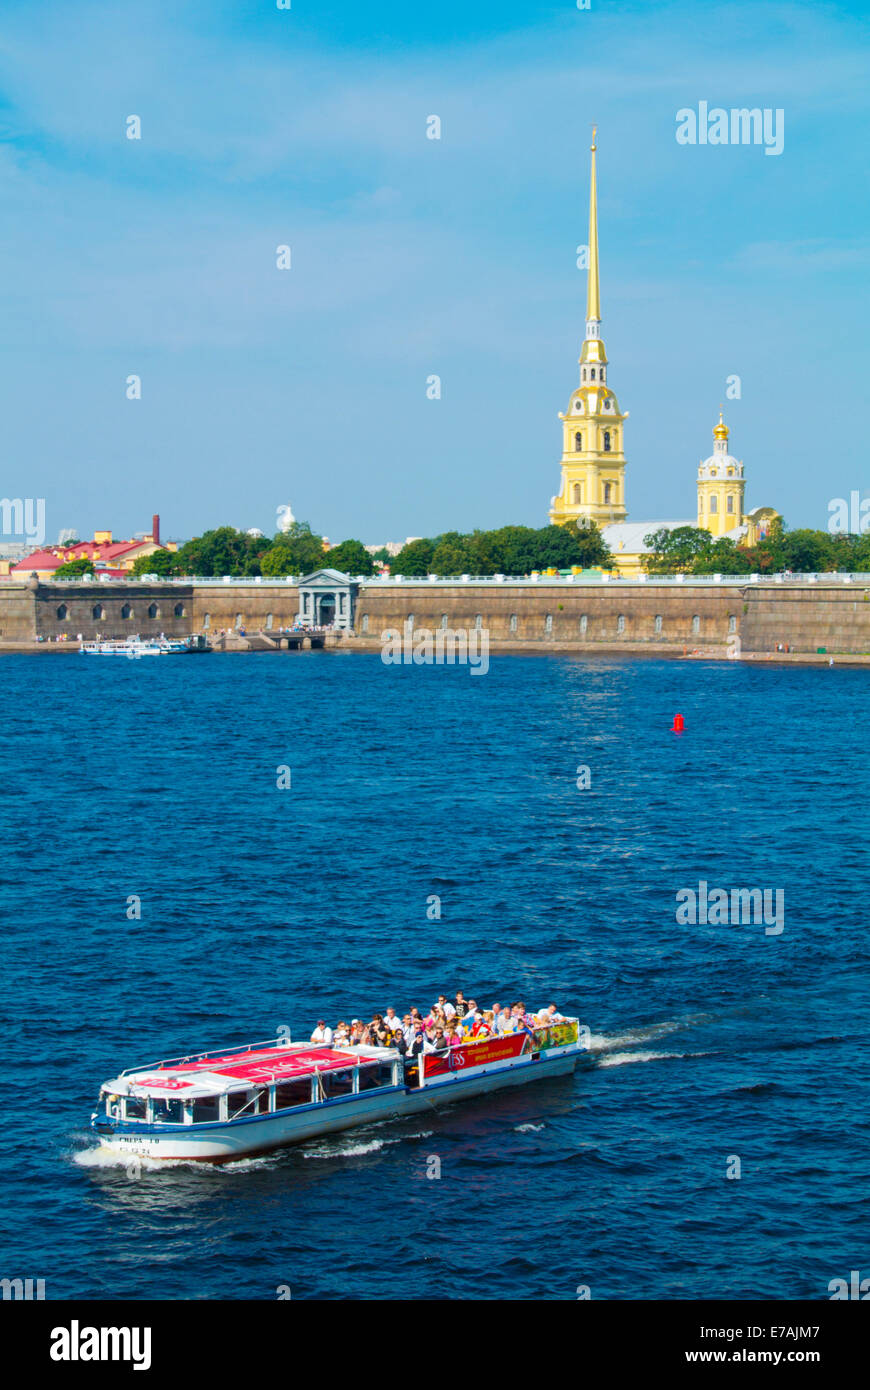 Sightseeing cruise tour boat on Neva river, with Peter and Paul fortress in background, Saint Petersburg, Russia, - Stock Image